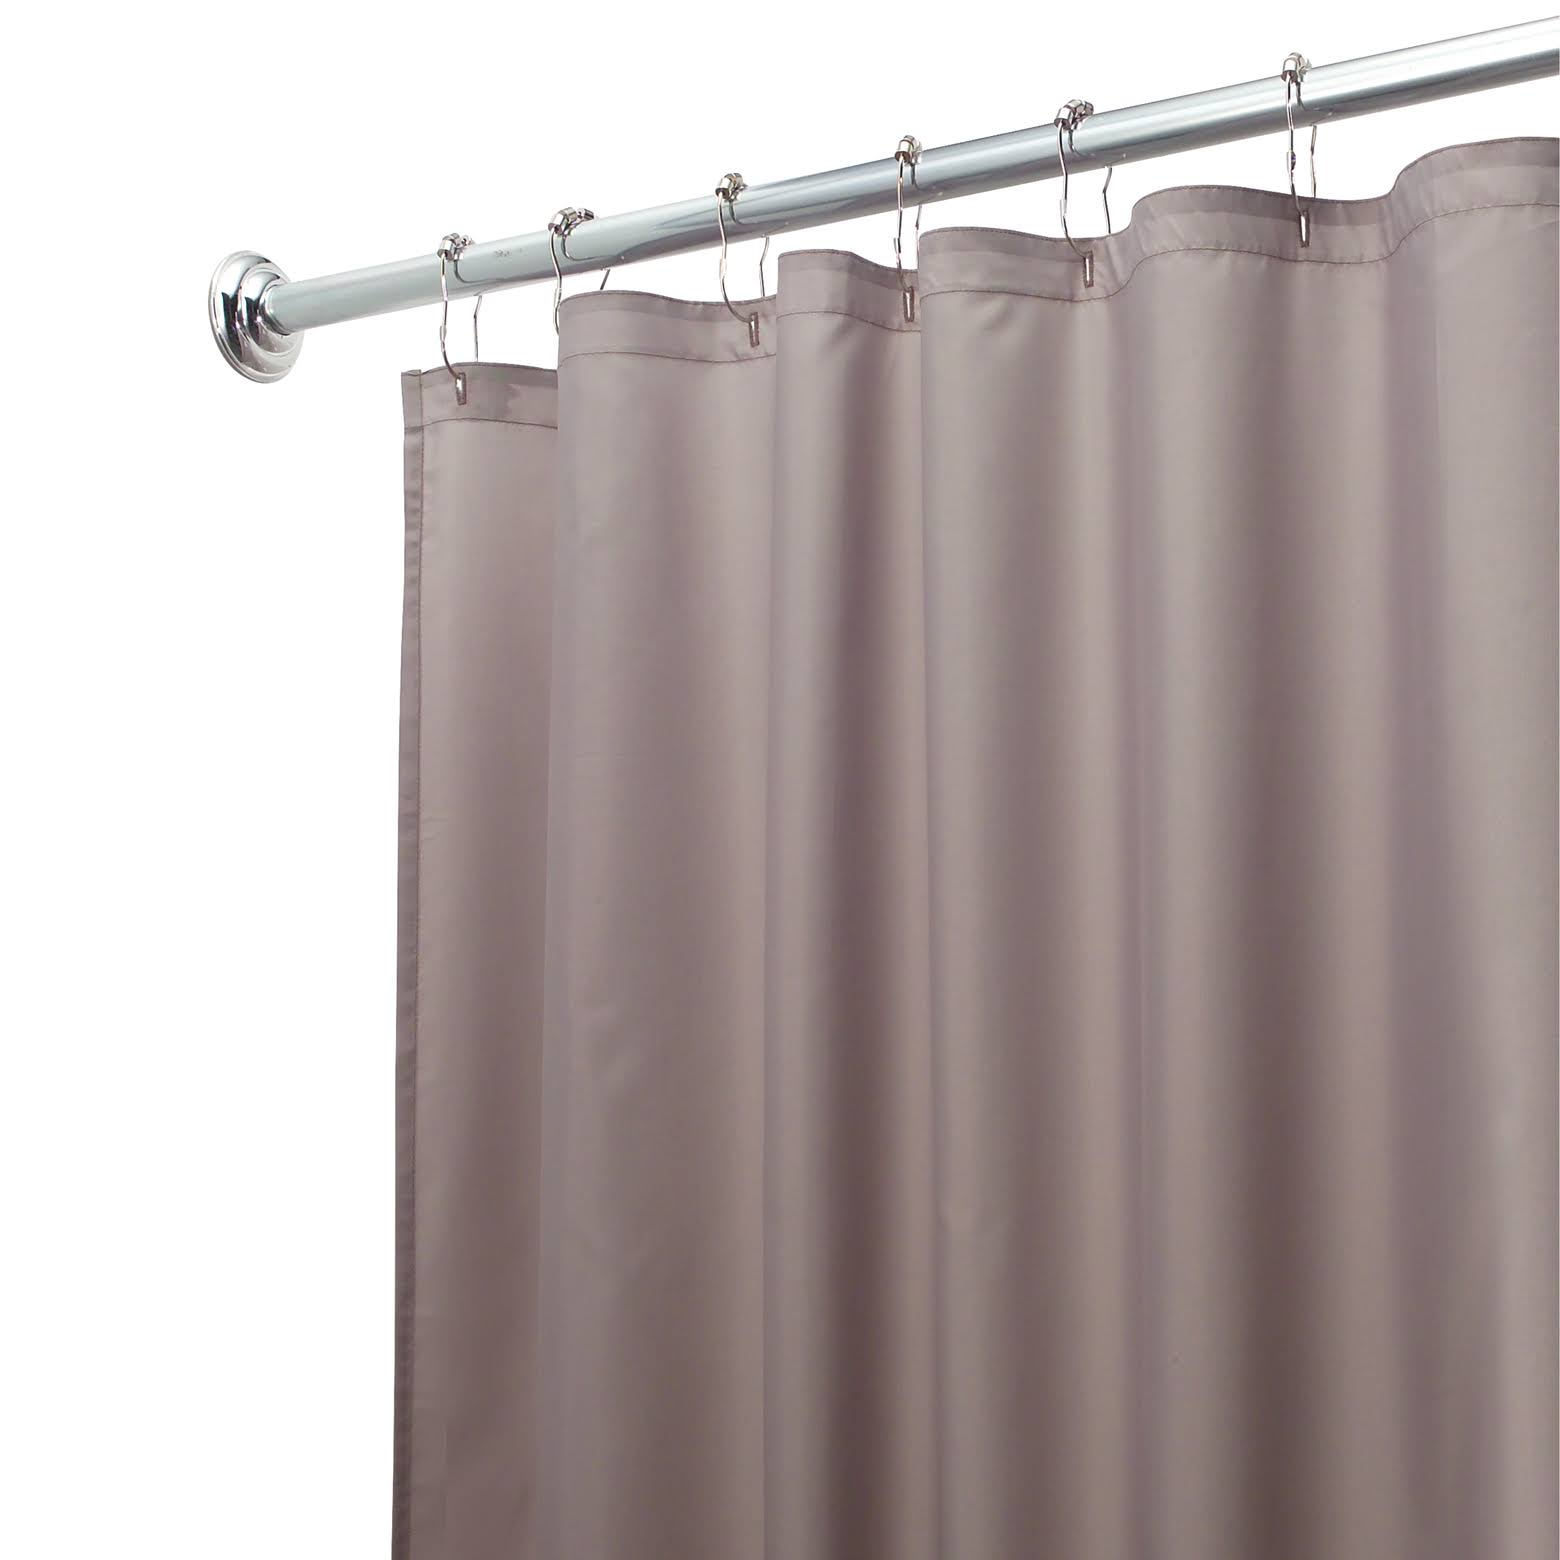 Interdesign Shower Curtain Liner - Gray